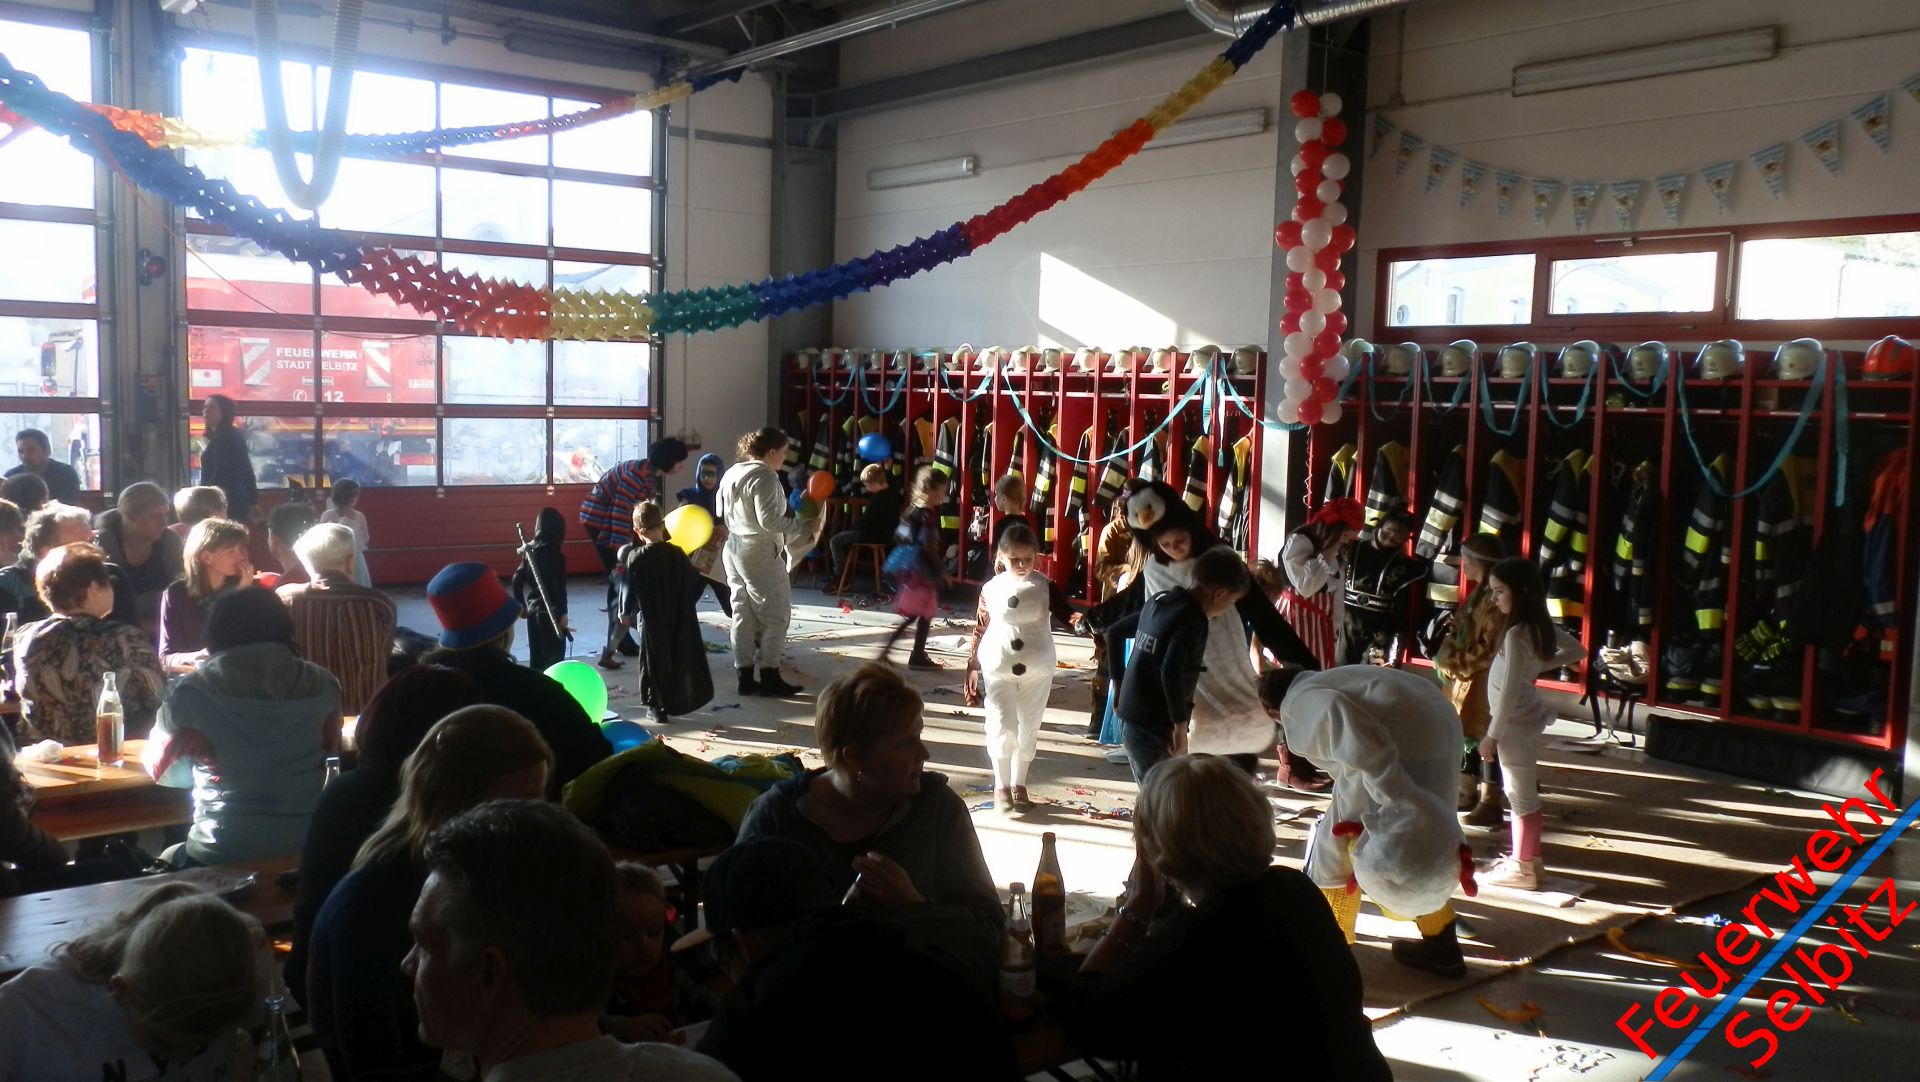 2017 02 26 kinderfasching 8